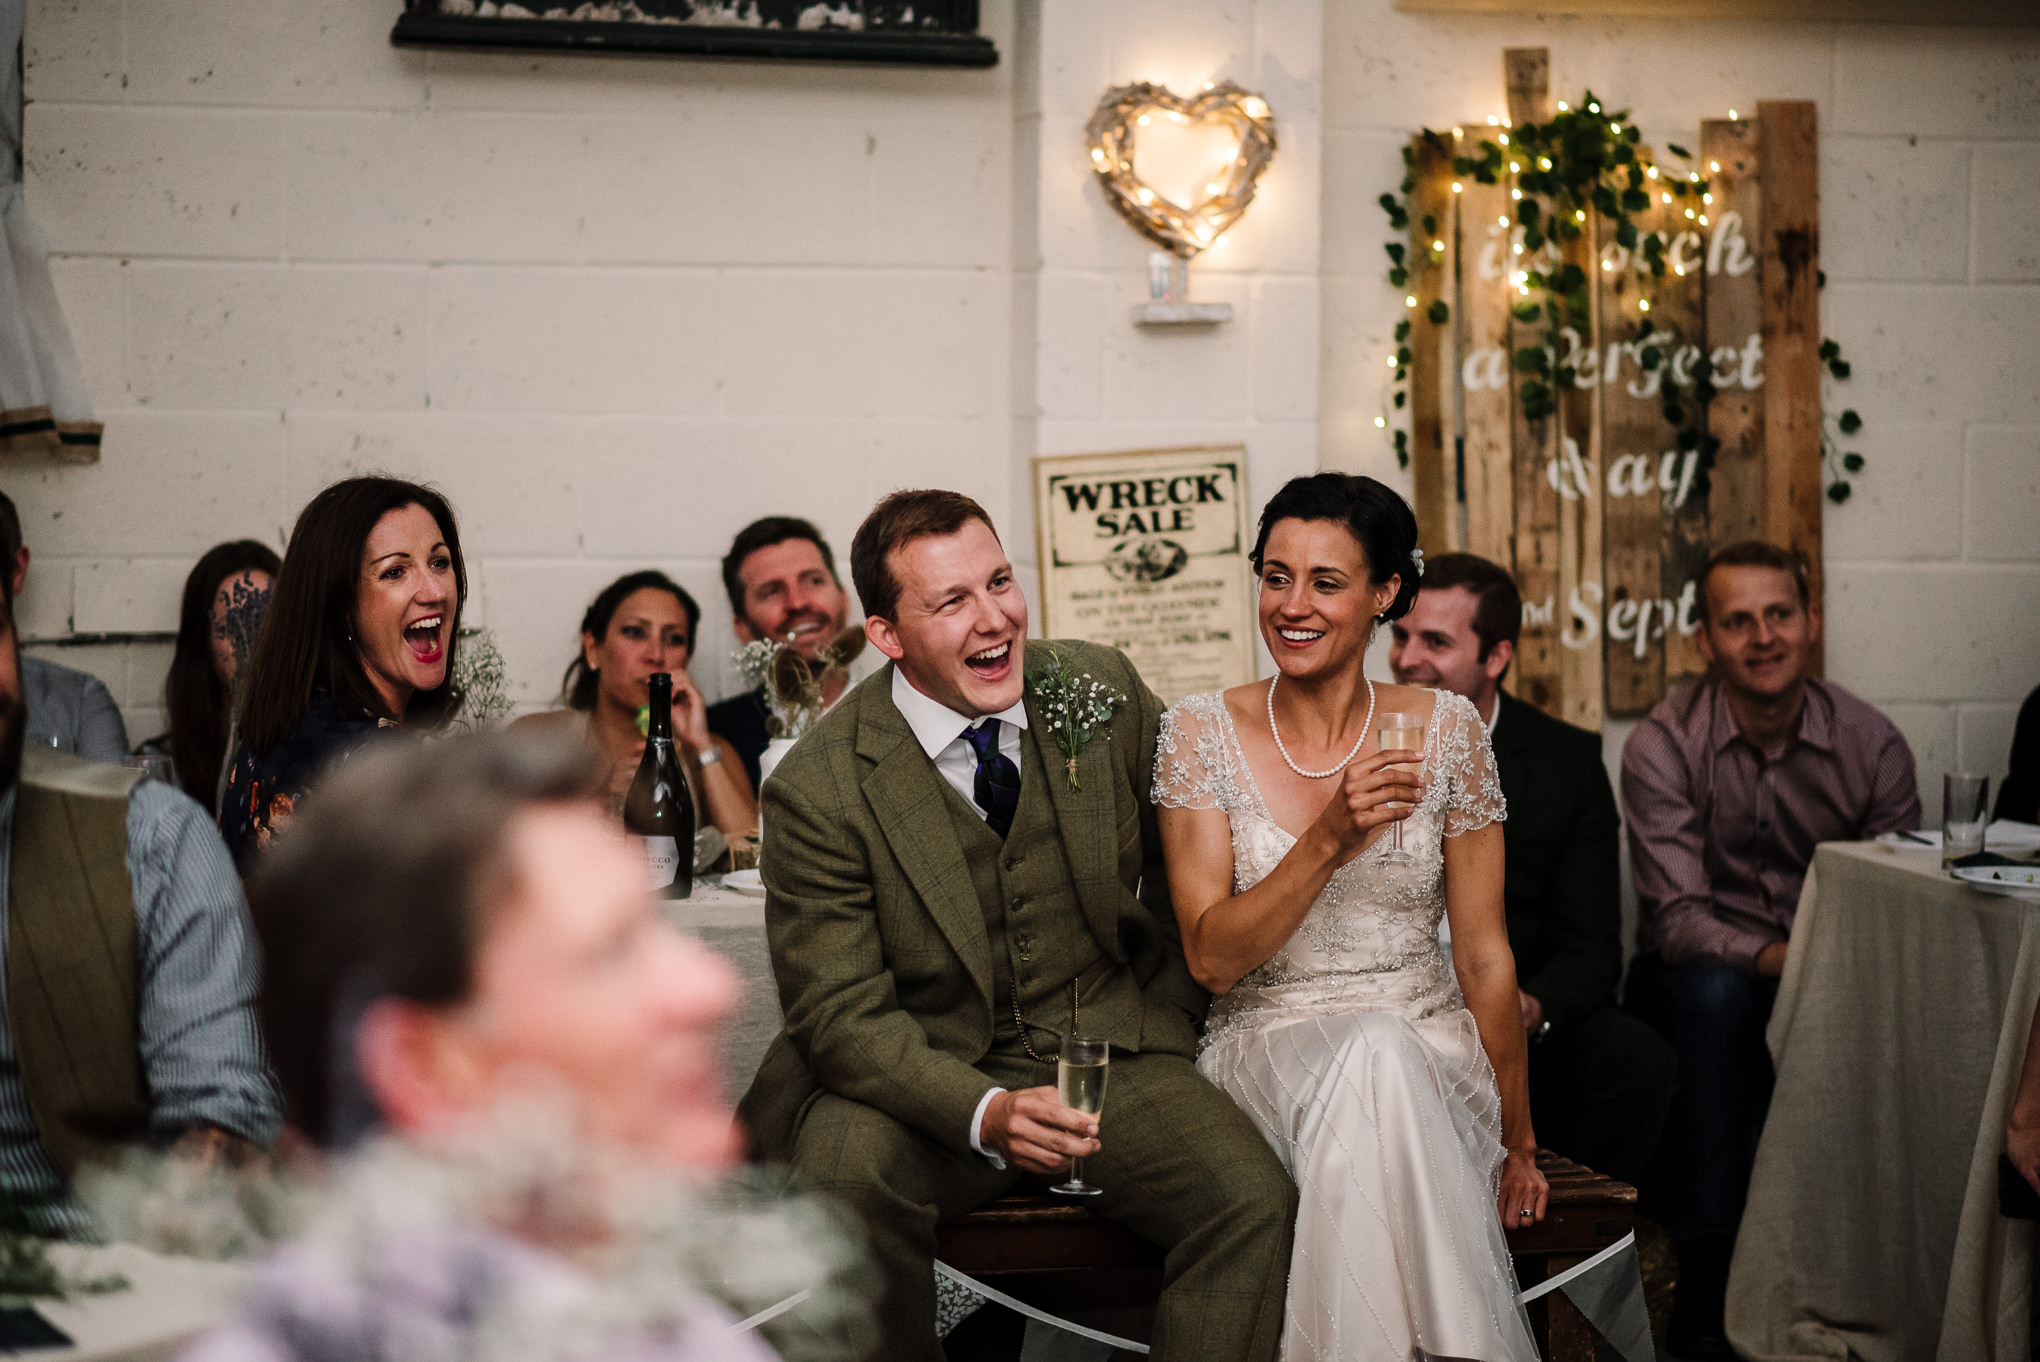 Relaxed photo of bride and groom durning speeches.